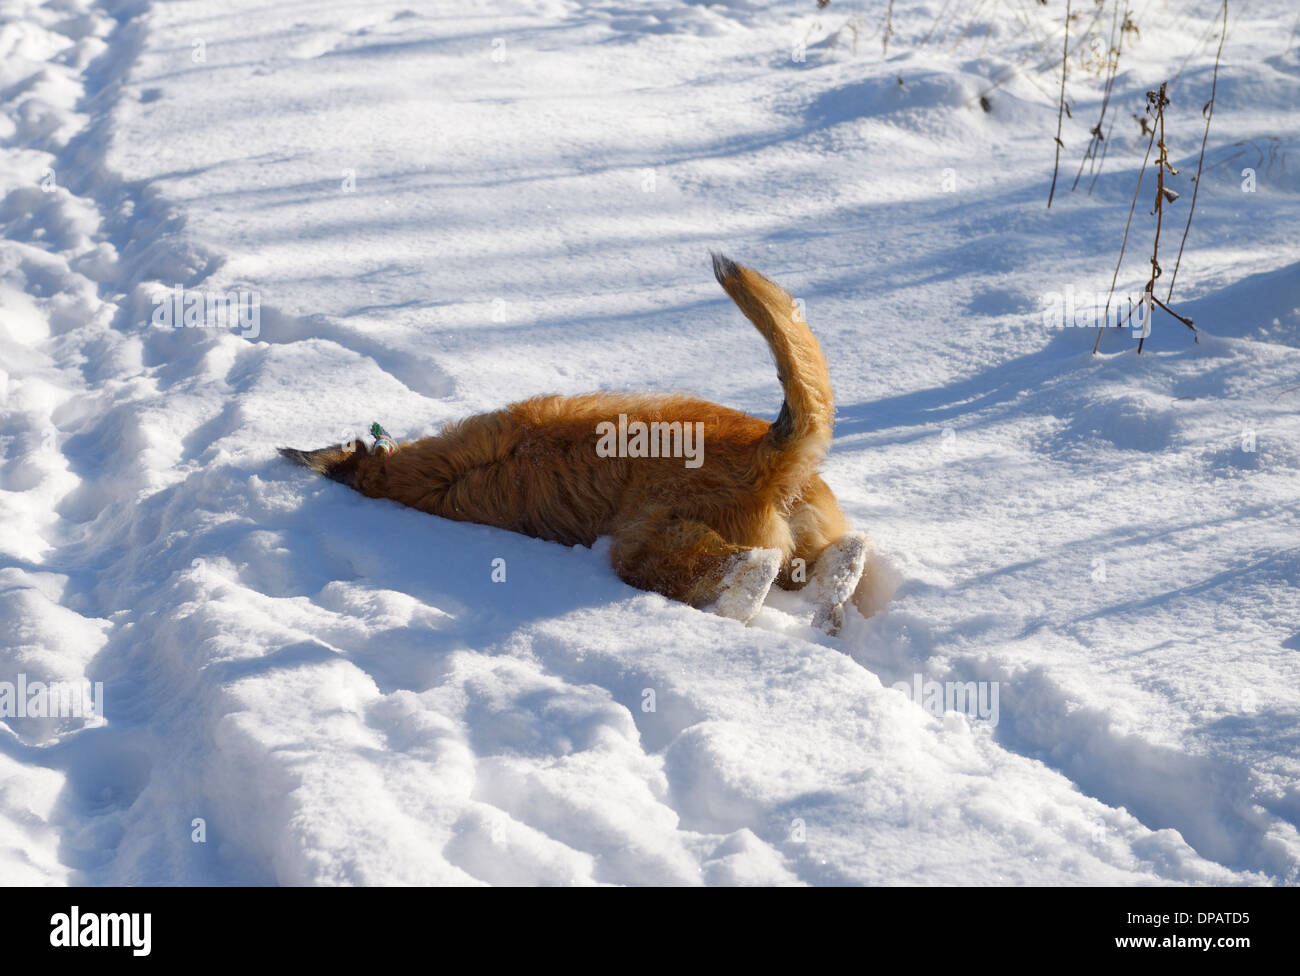 Pet dog on a walk burrowing into deep fresh snow to remove burrs from face with bum in the air - Stock Image